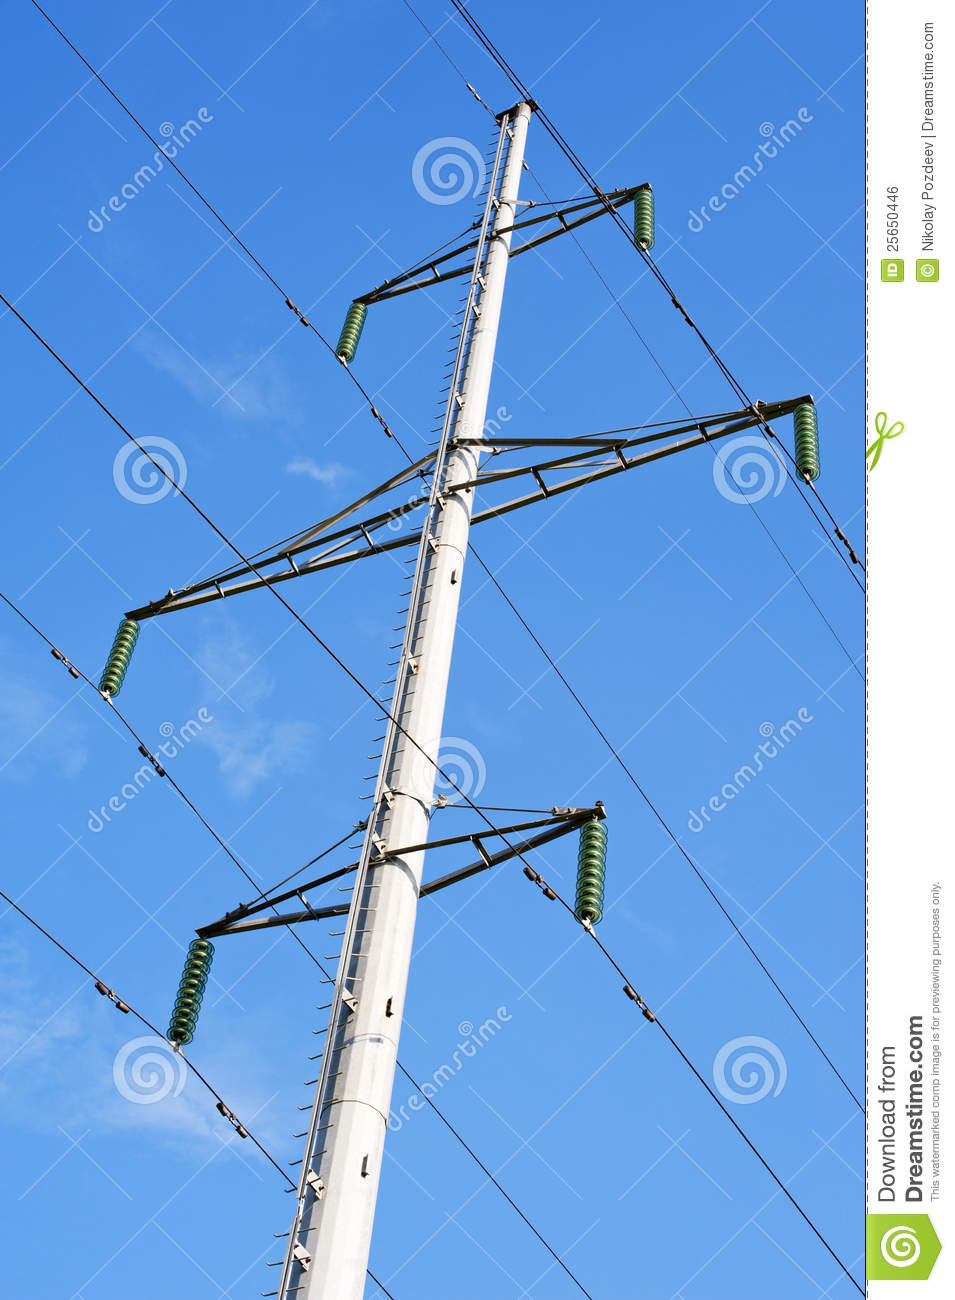 High Voltage Transmission Lines : High voltage transmission line tower royalty free stock